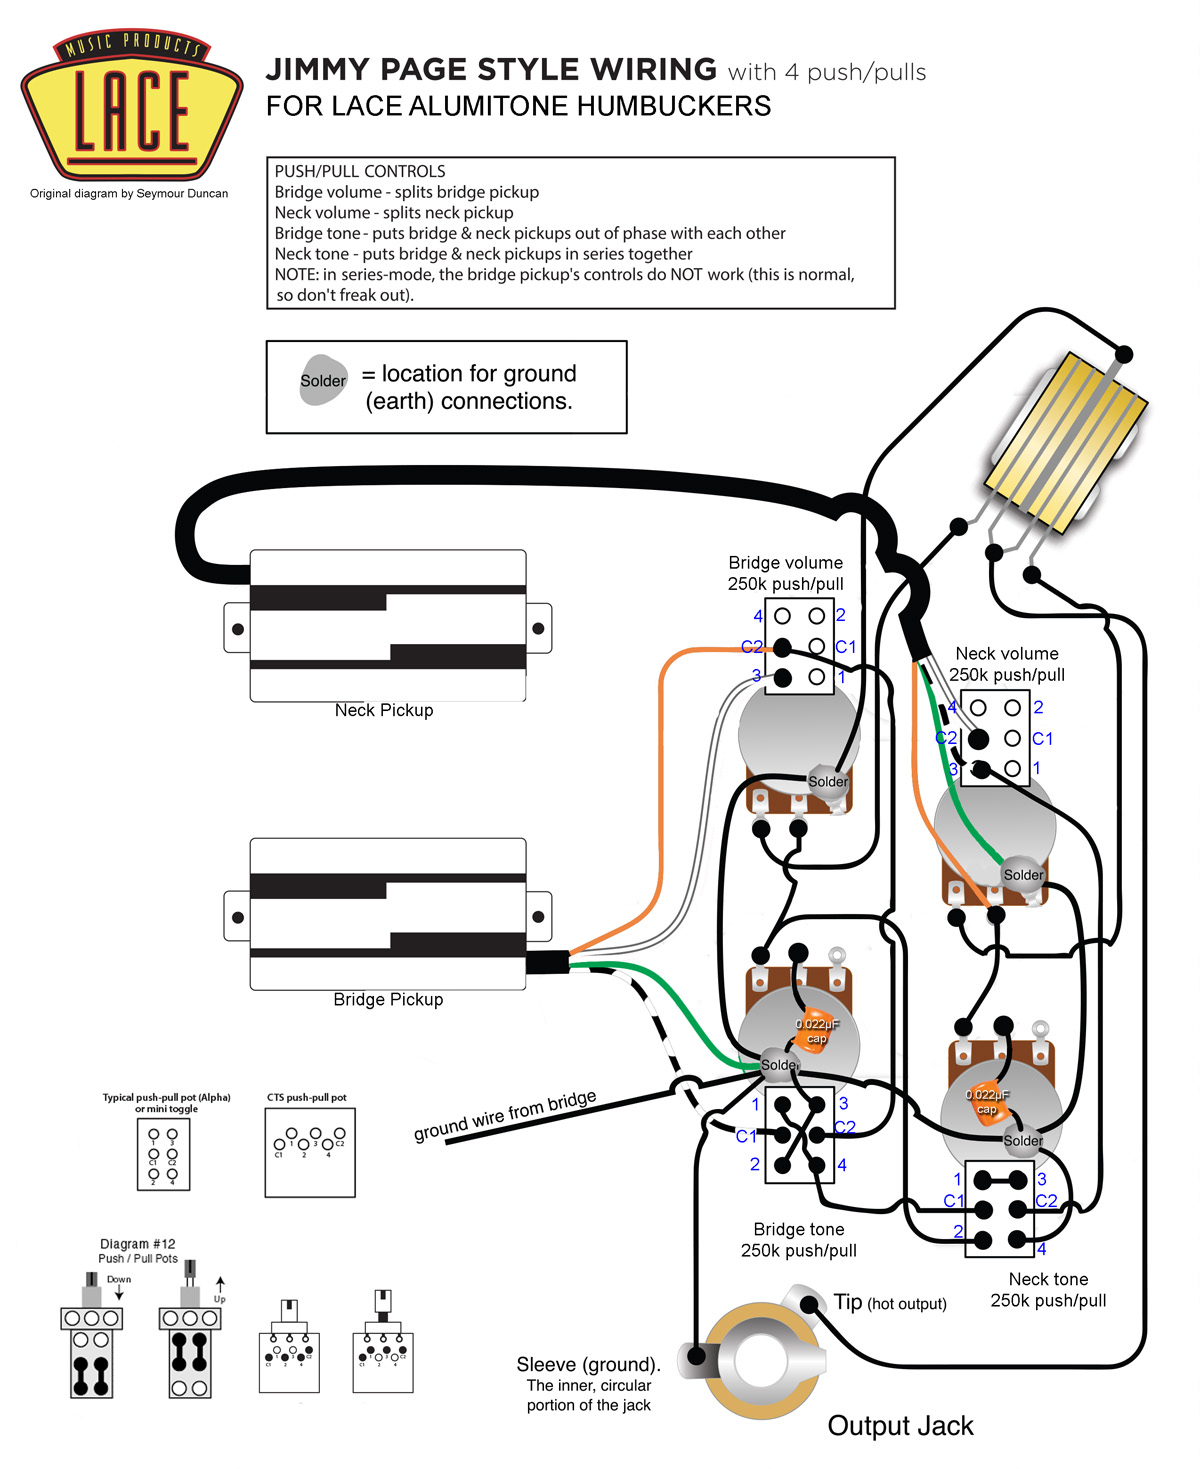 Jimmy Page Les Paul Wiring Diagram List Of Schematic Circuit Guitar With Lace Alumitone Pickups My Forum Rh Mylespaul Com Gibson